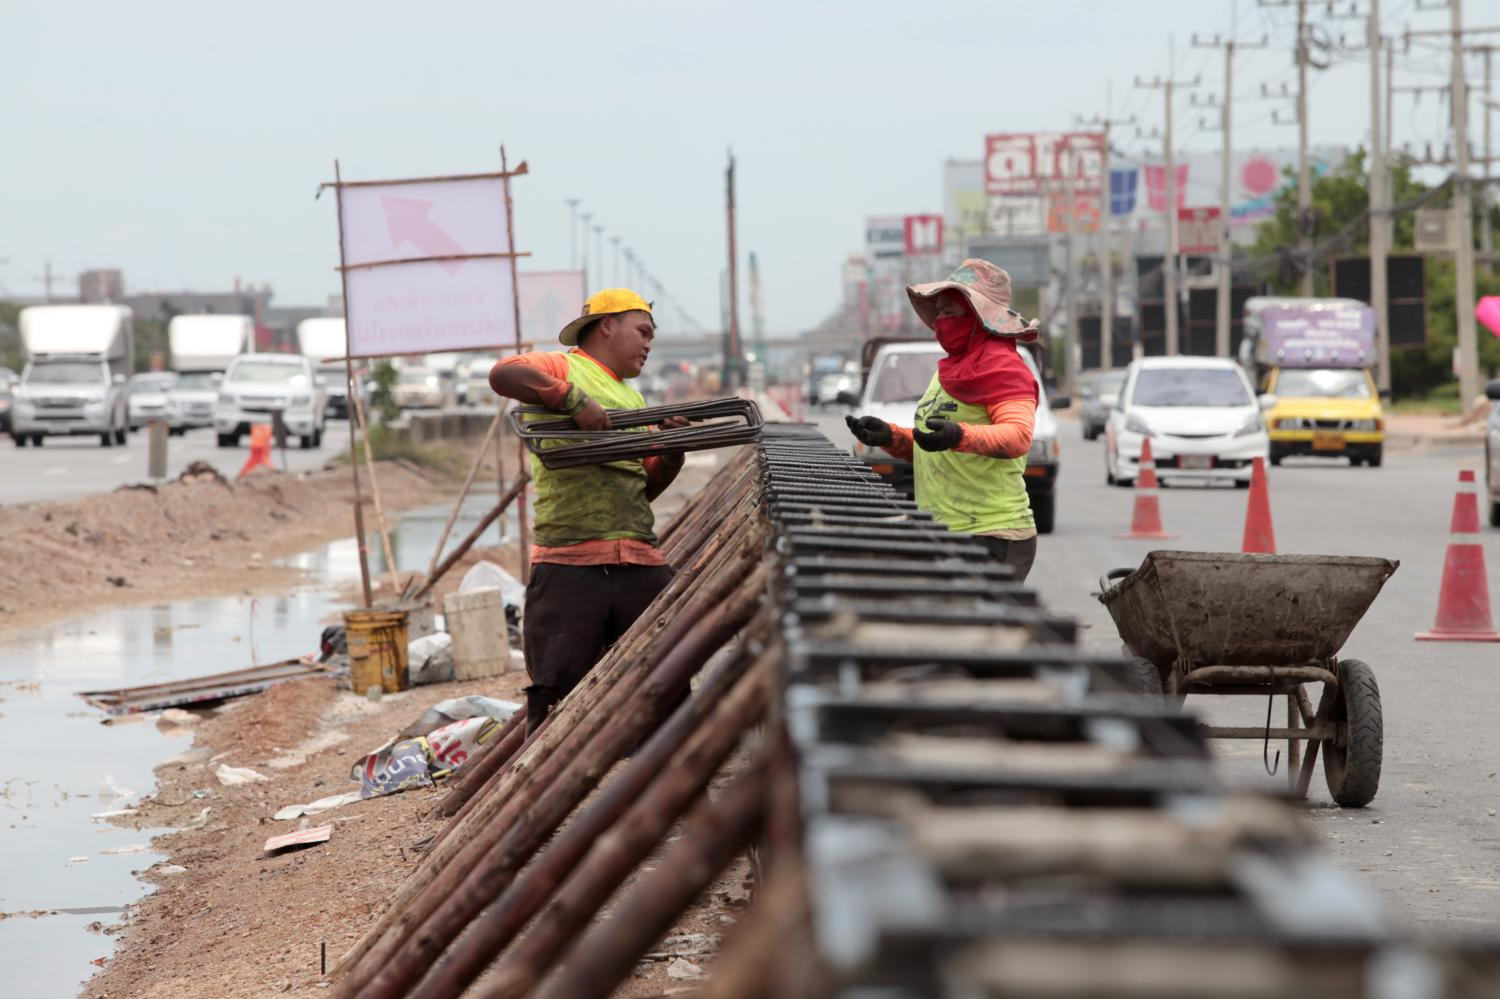 Workers toil to complete the widening of Rama II Road in Samut Sakhon by a targeted date of the end of next year. The sluggish pace of the work so far has caused heavy traffic congestion on the country's main route to the South.Chanat Katanyu